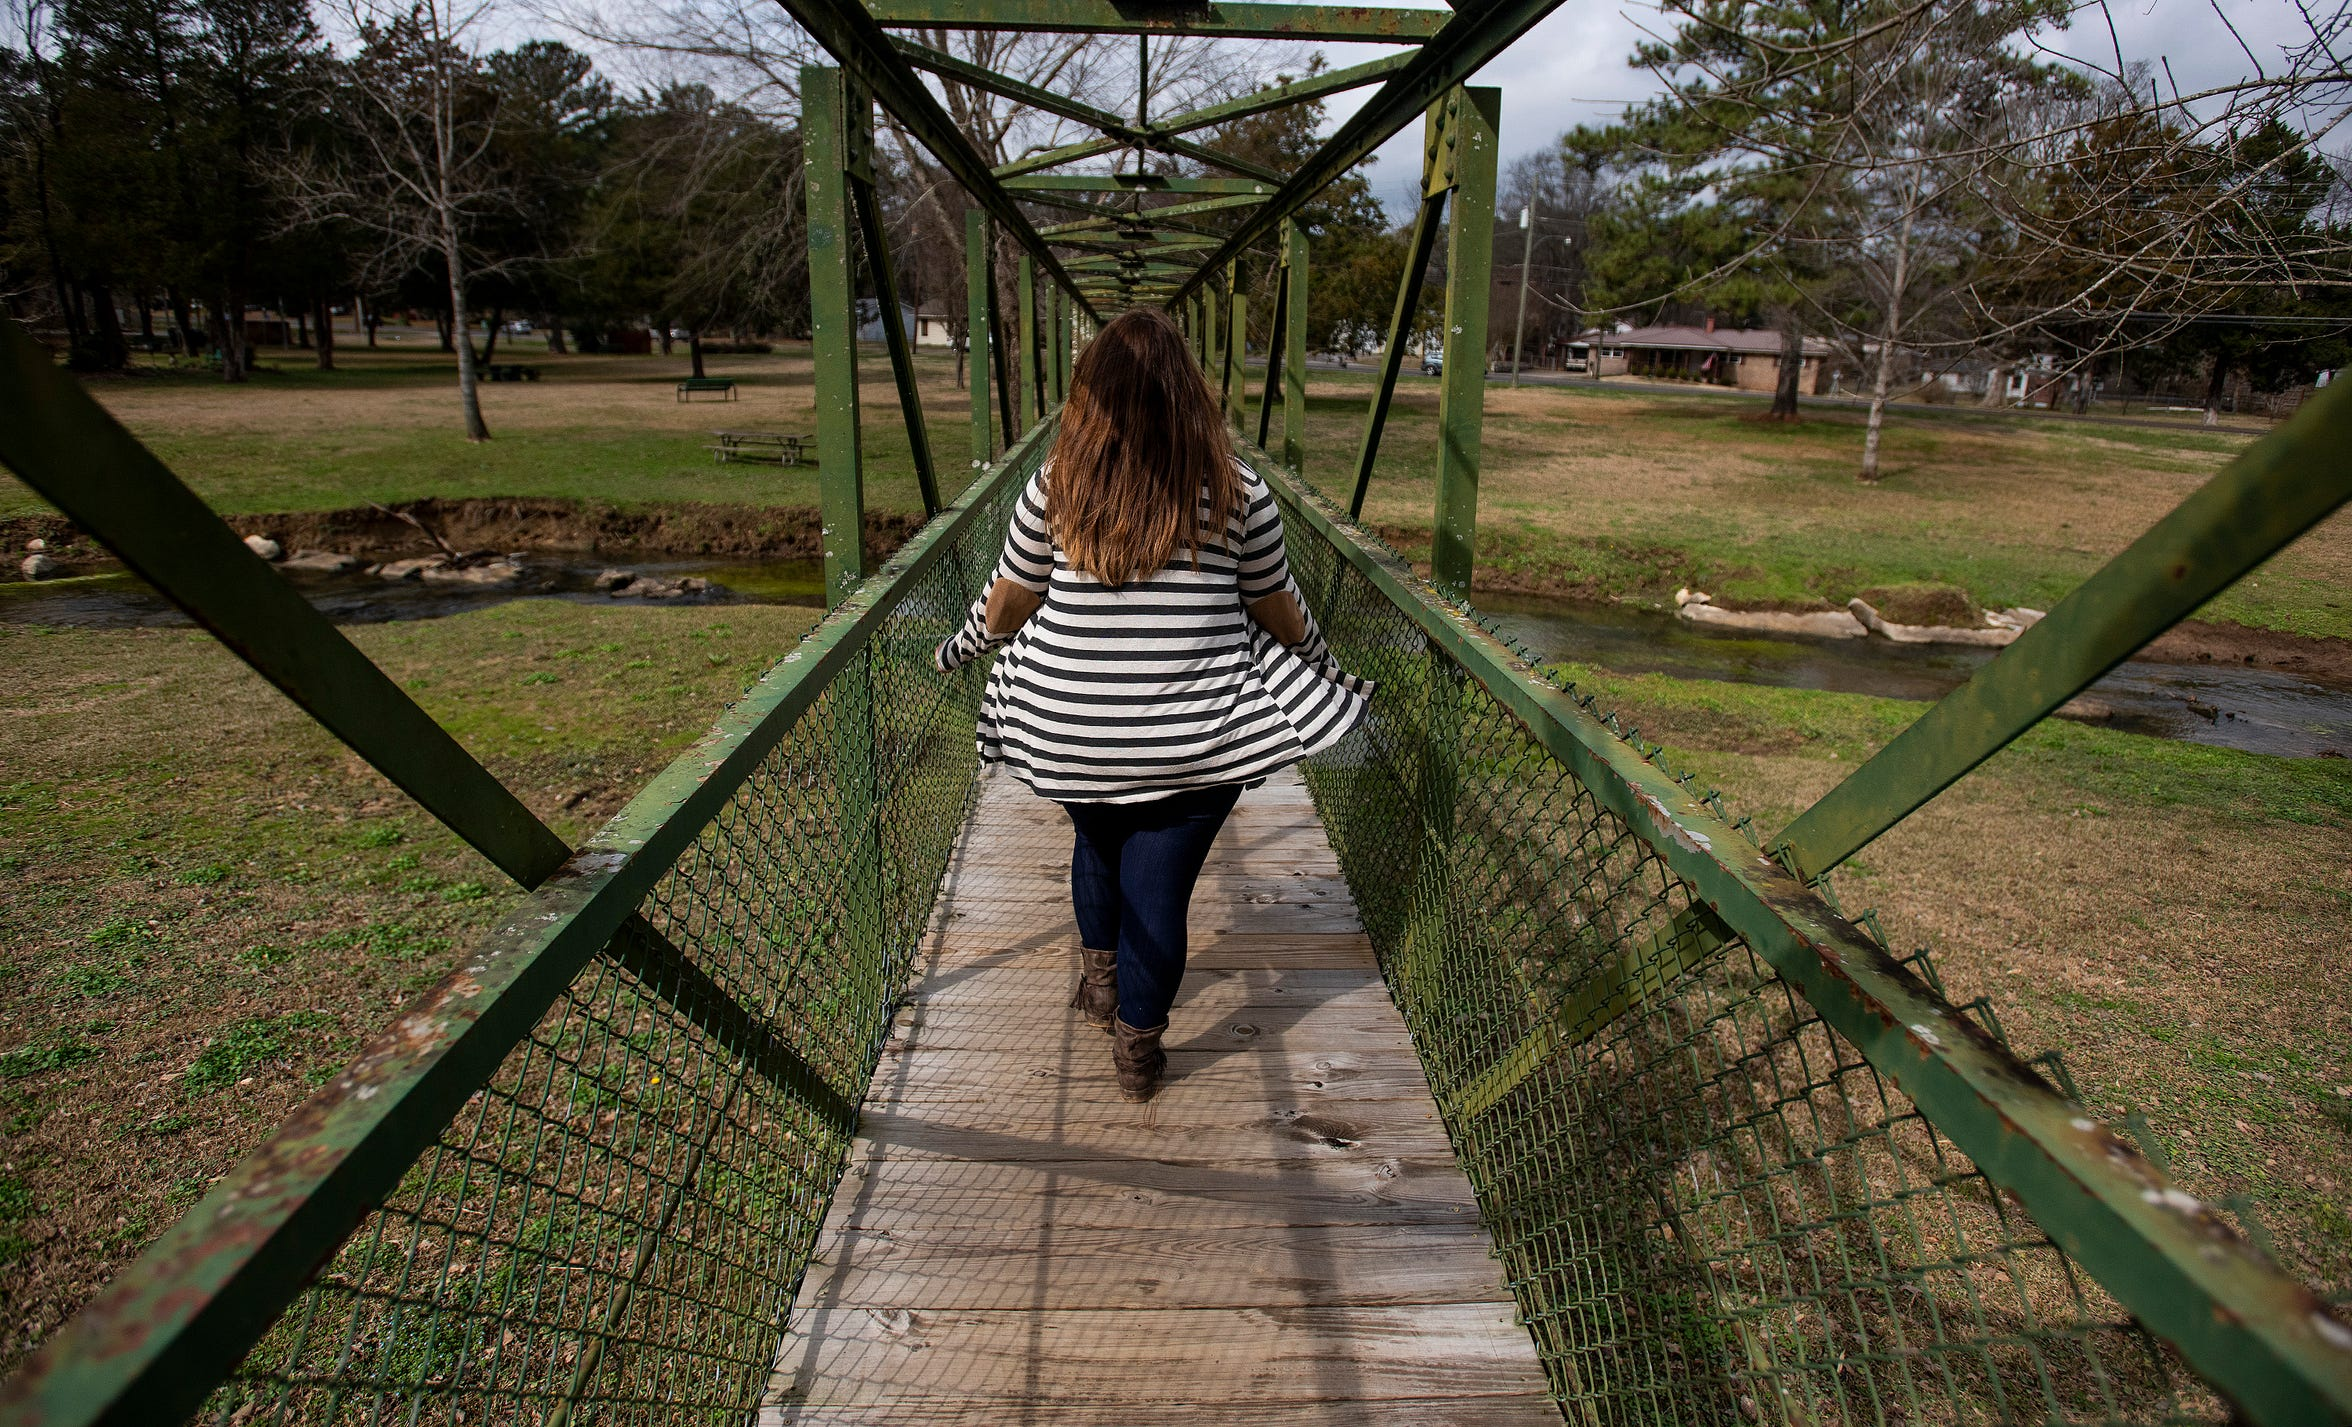 A human trafficking victim is shown near her home in Alabama on Wednesday February 6, 2019.